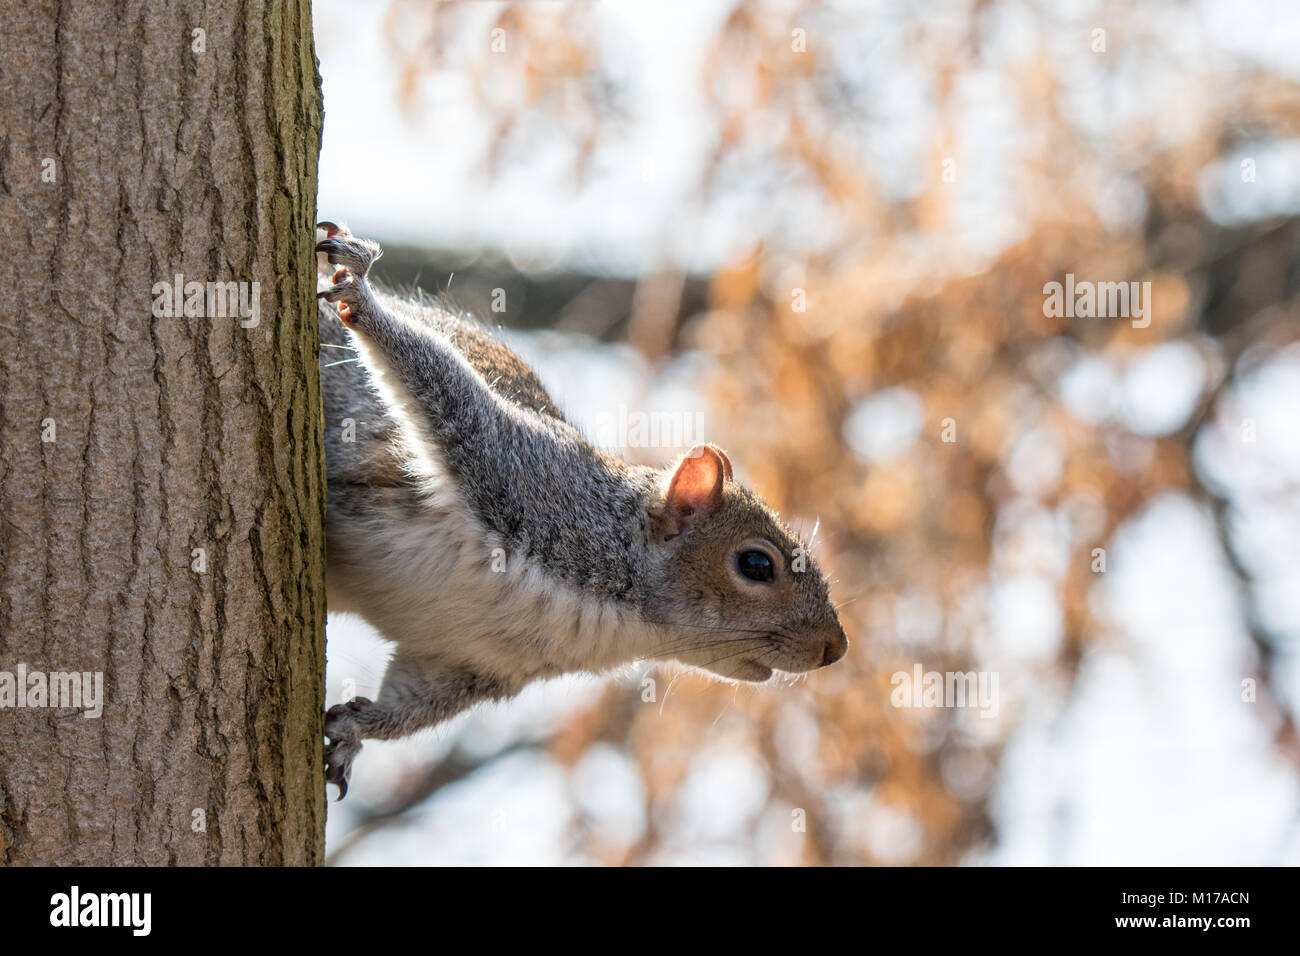 Grey squirrel on side of tree trunk about to jump. Close up in frame - Stock Image